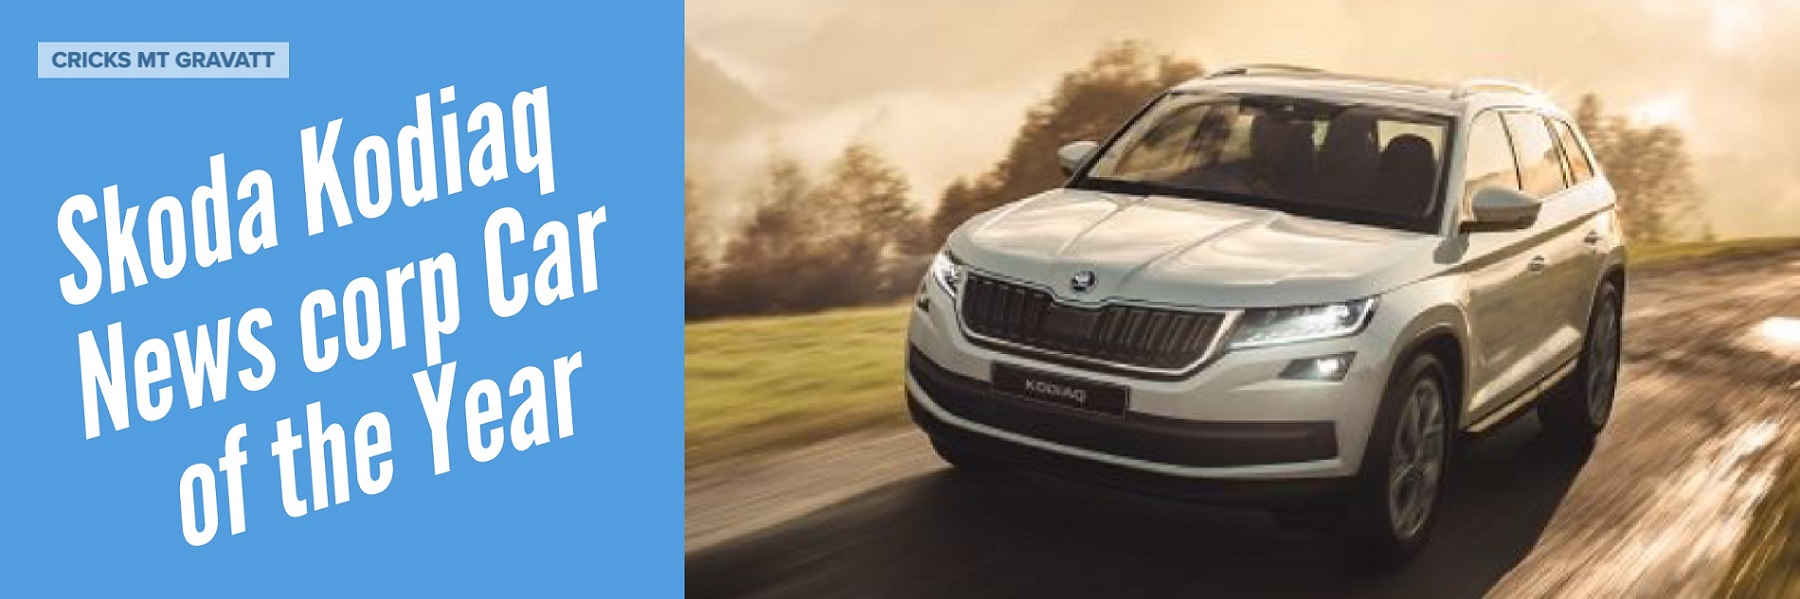 Skoda Kodiaq news corp car of the year